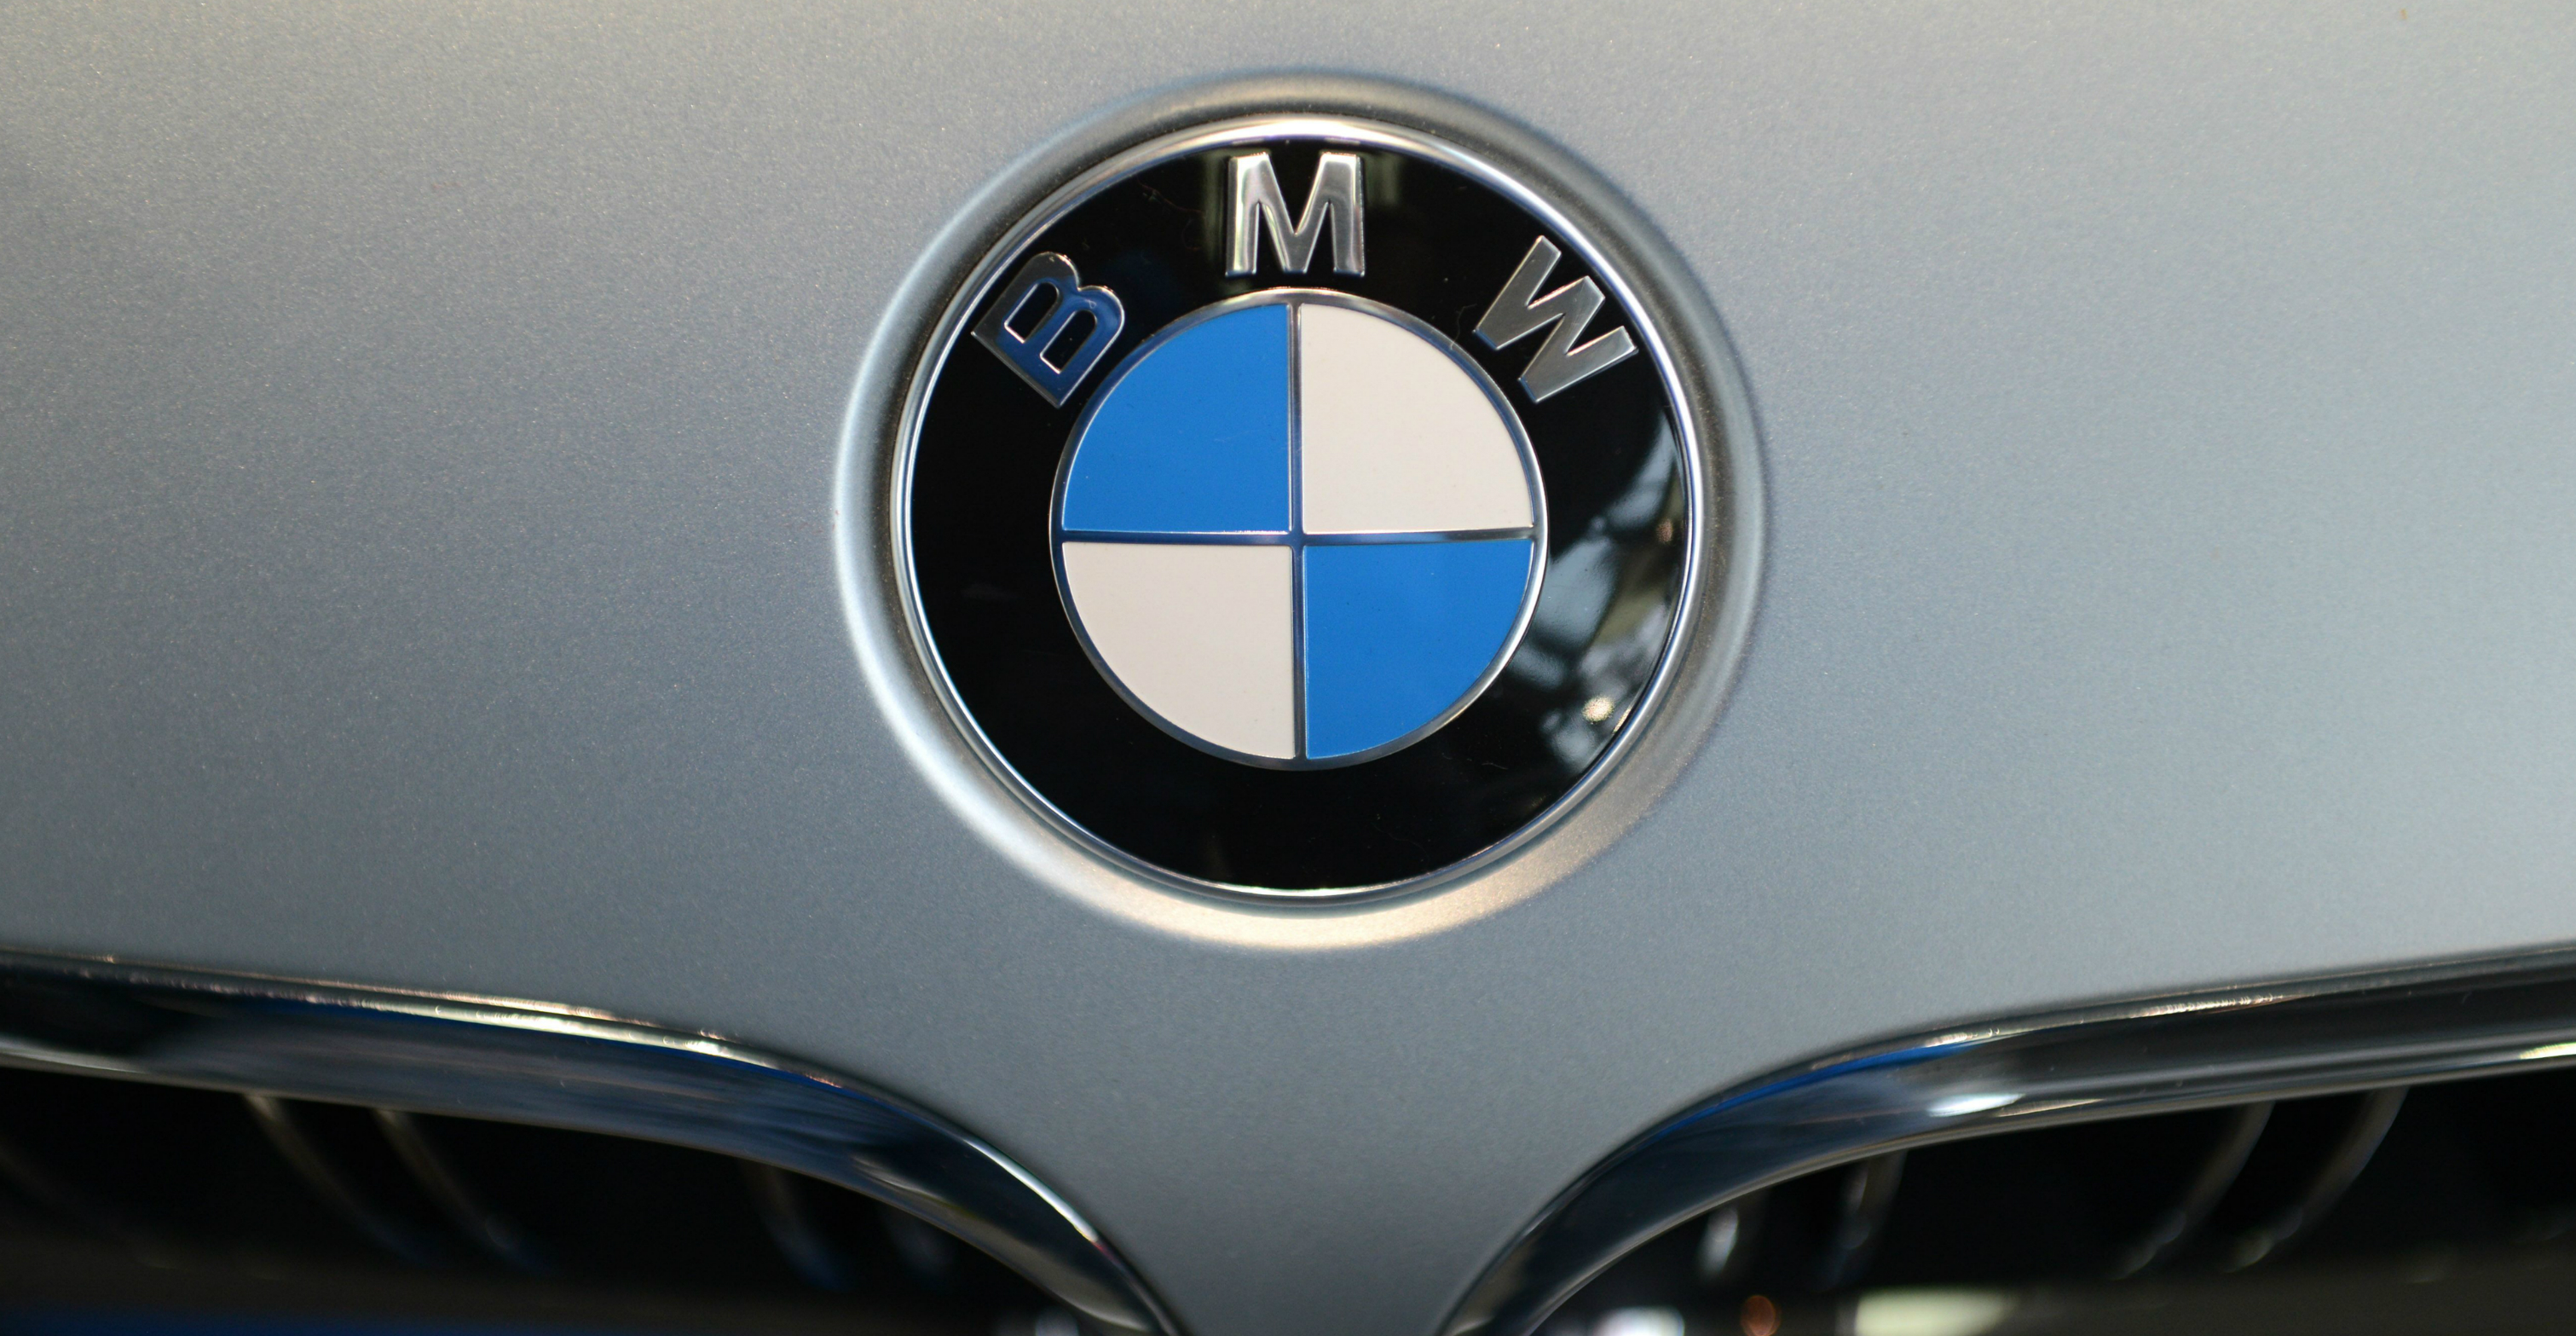 BMW will lift its stake in its venture with Brilliance China to 75 percent from 50 percent, with the deal closing in 2022. Photo: AFP